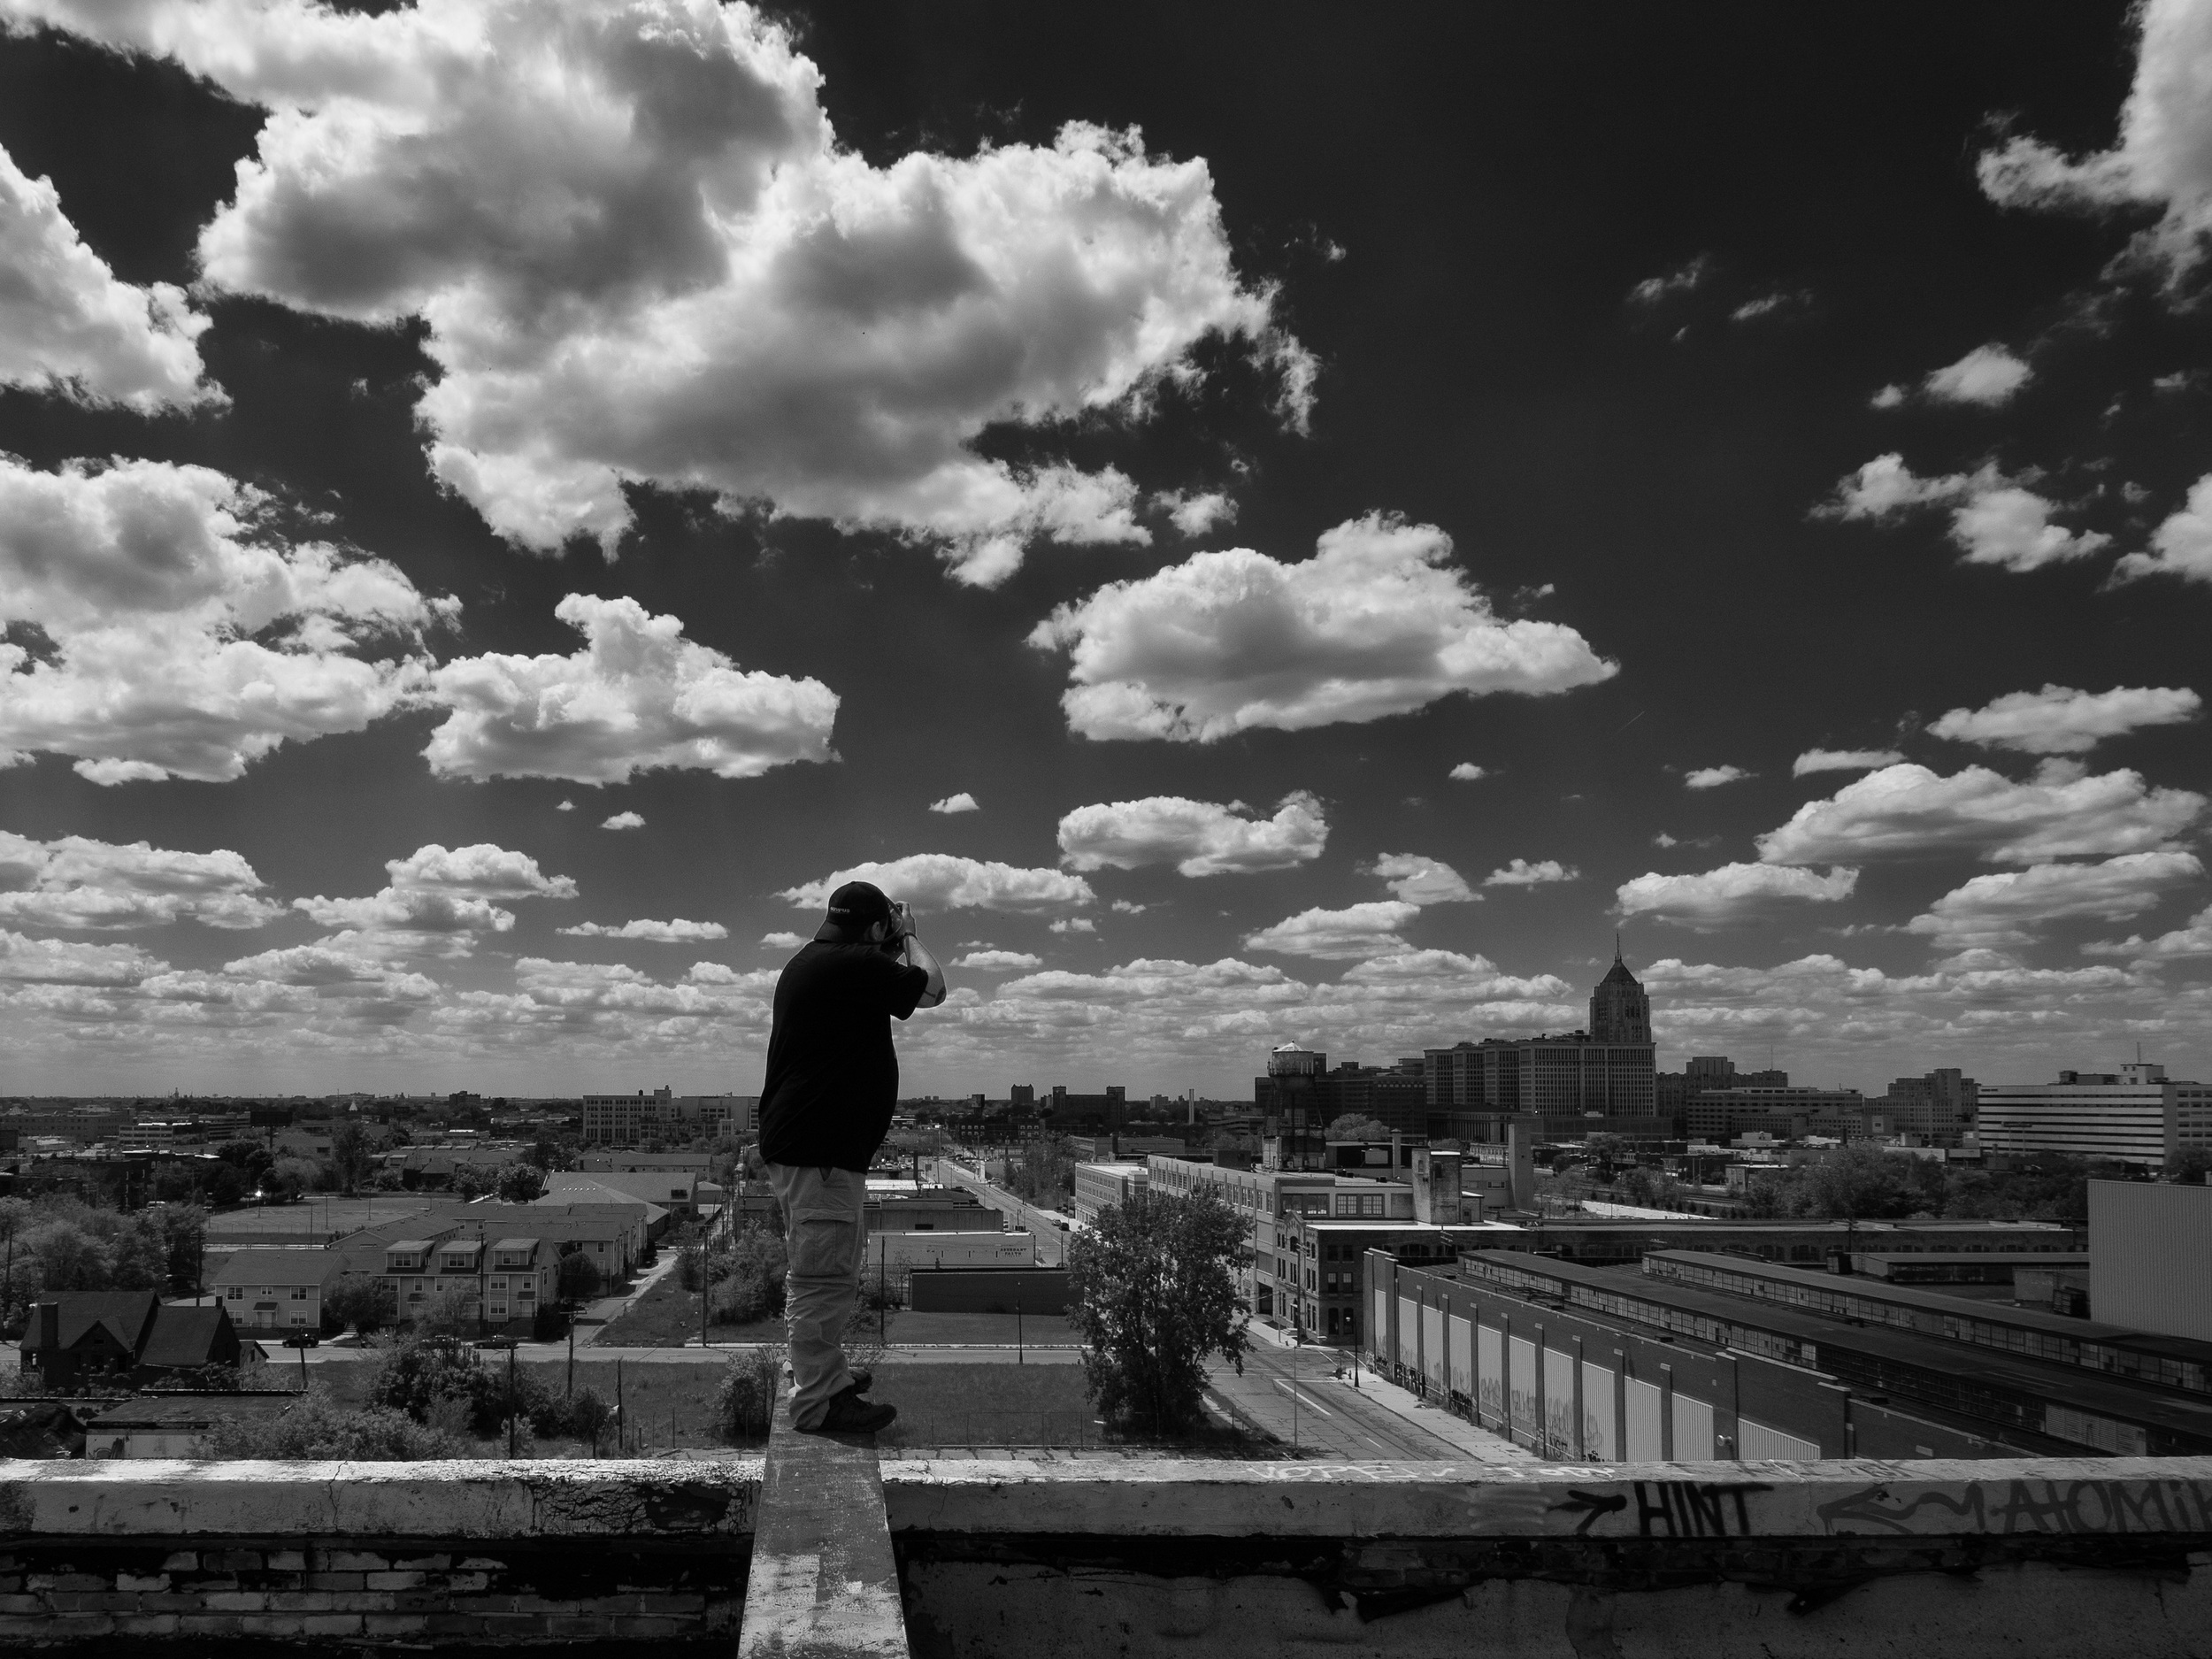 And like the other locations......Rooftop access offered some of the most incredible opportunities to photograph.